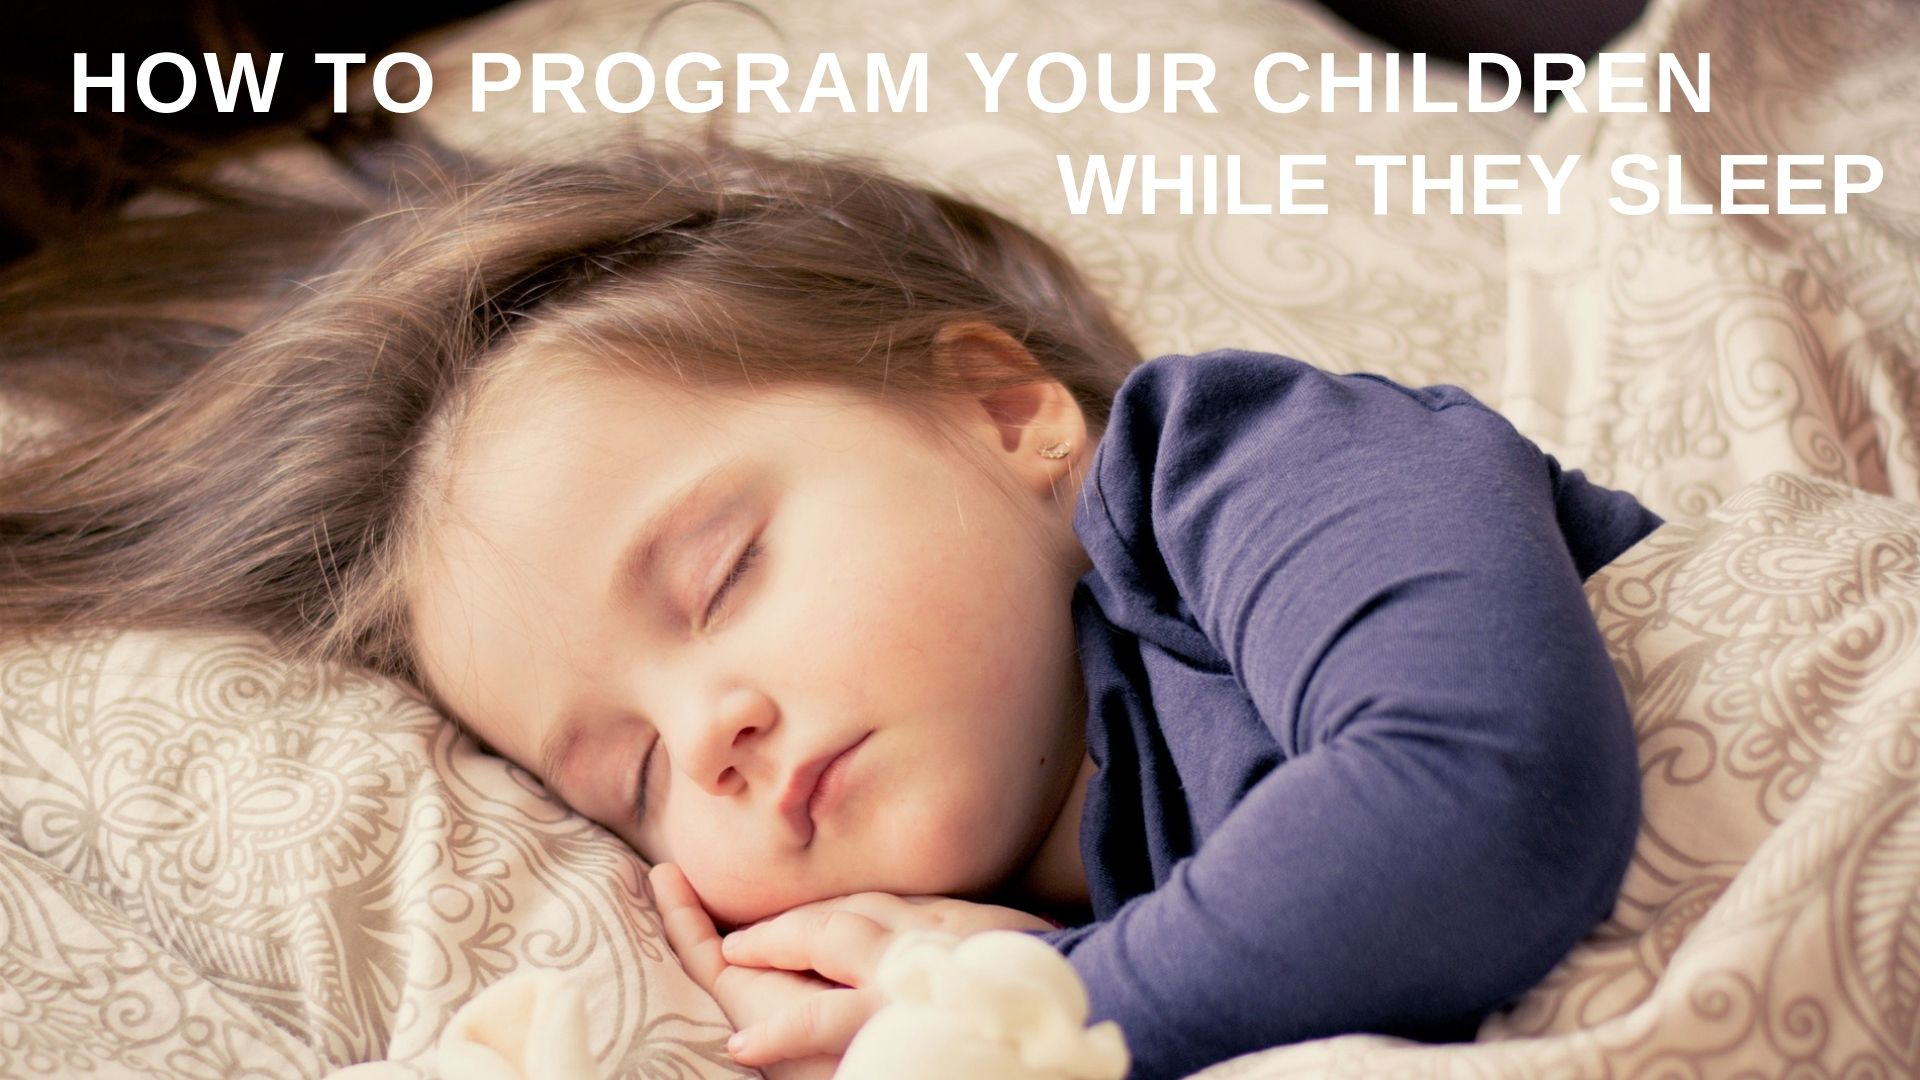 How To Program Your Children While They Sleep